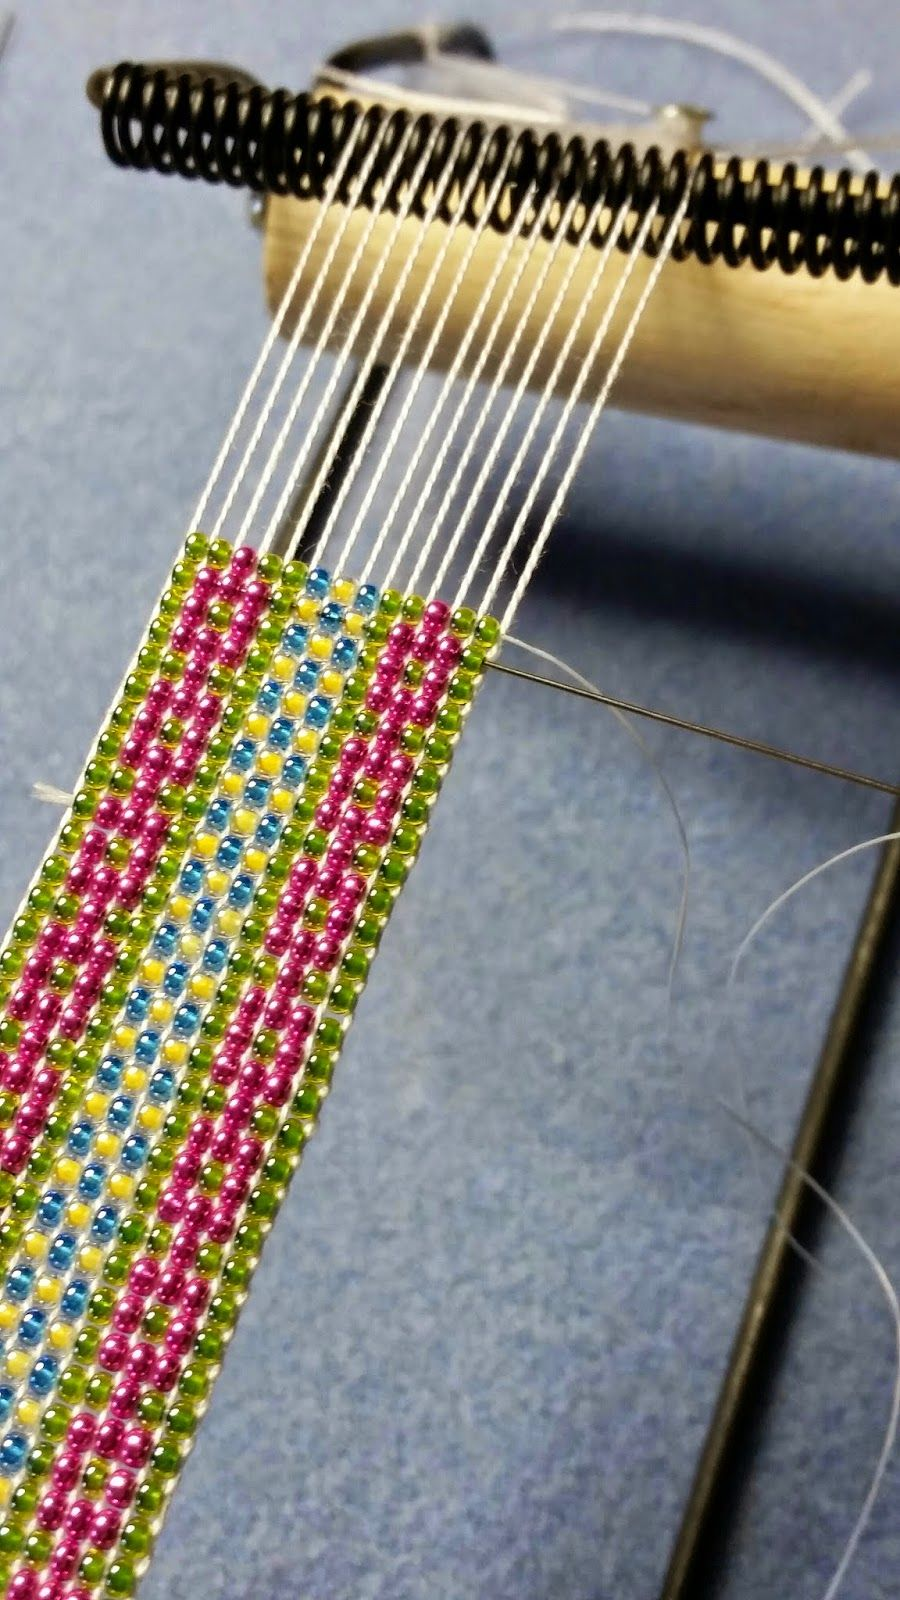 How To Finish A Loomed Bracelet